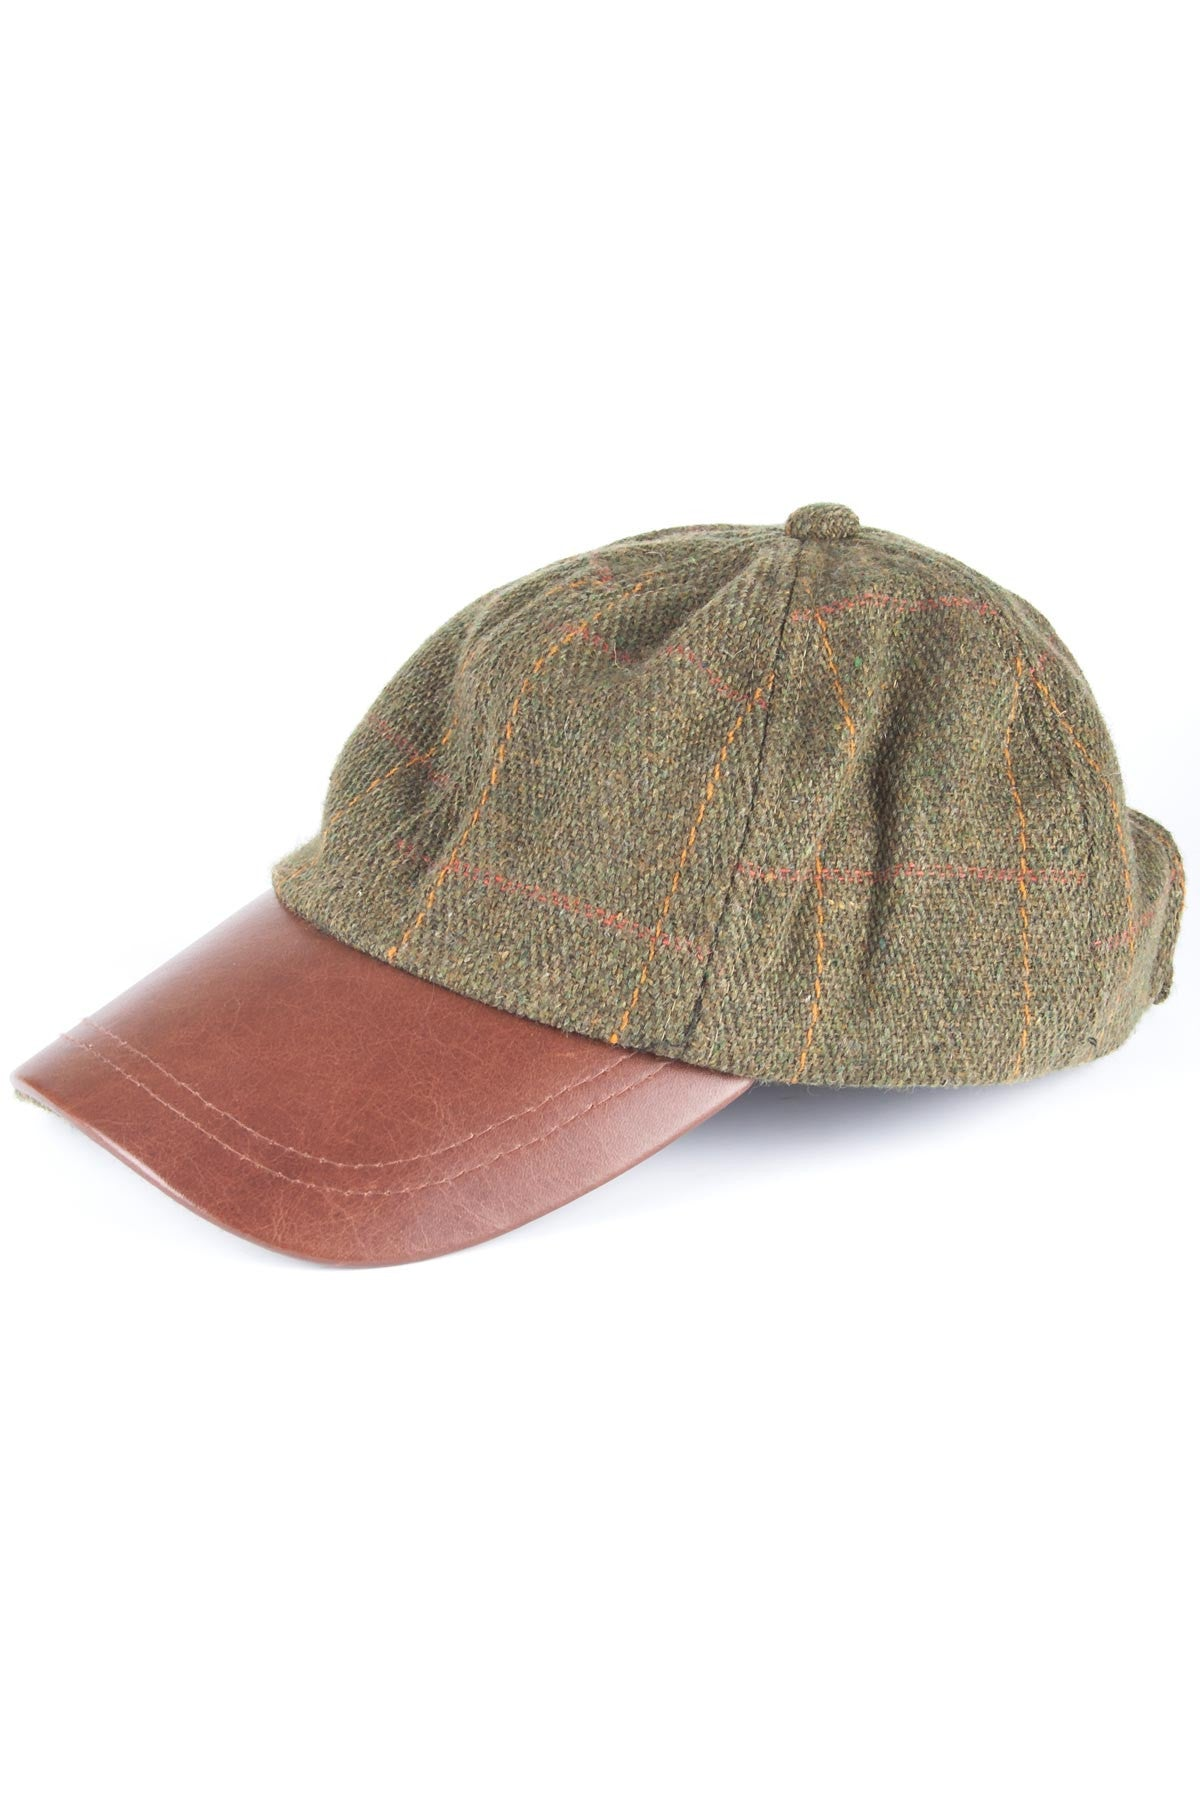 ... Tweed Baseball Cap with Leather Peak. Previous 0e531424221